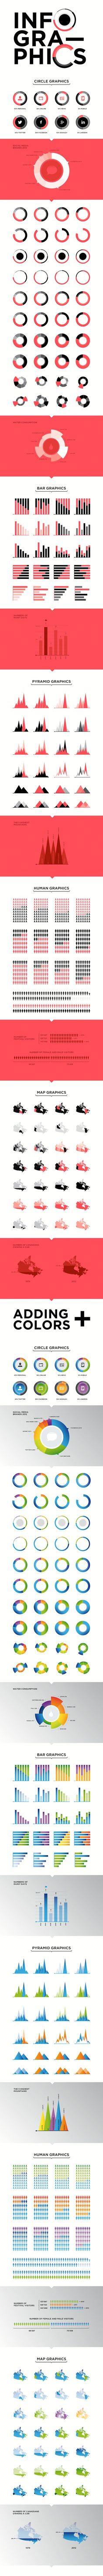 INFOGRAPHICS by simon spring, via Behance